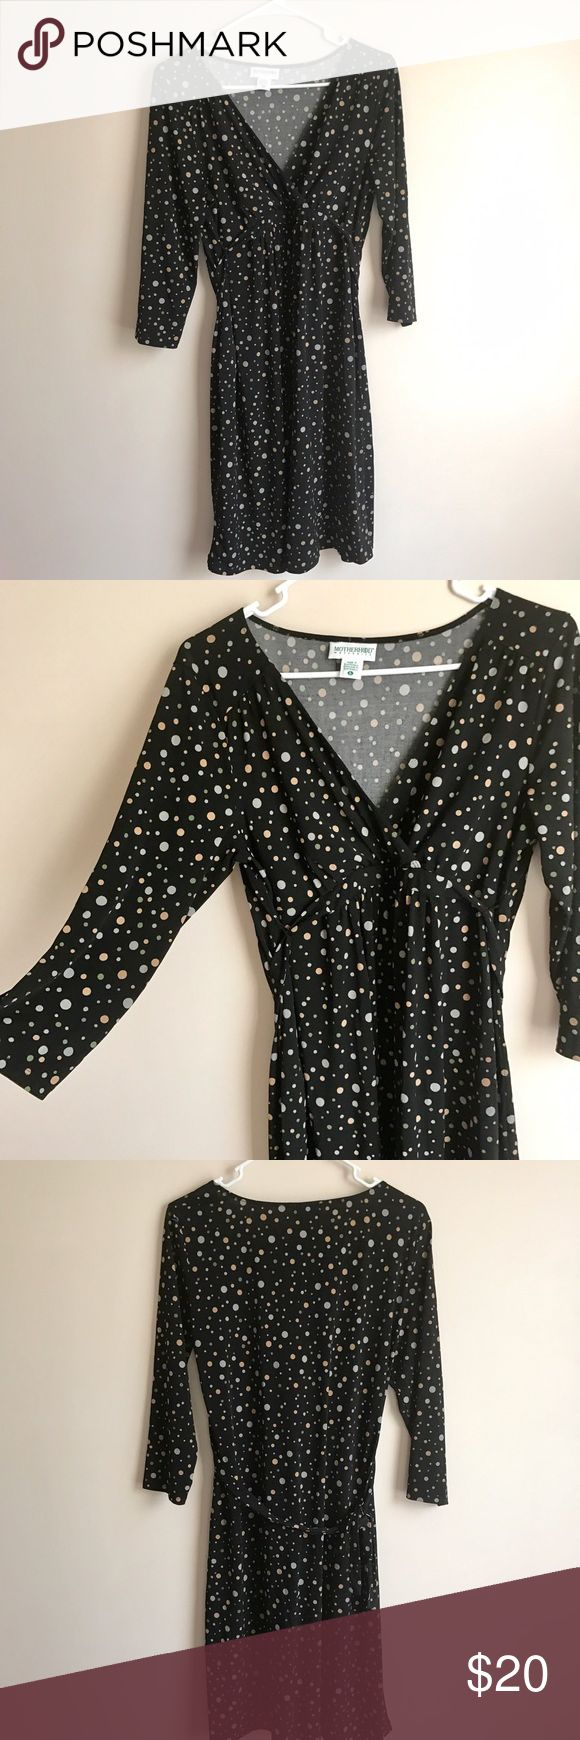 Polka Dot Maternity Dress Cute maternity dress from Motherhood... black with green, gray and tan polka dots... v-neck... 3/4 sleeves... ties in the back... polyester... in excellent condition Motherhood Maternity Dresses